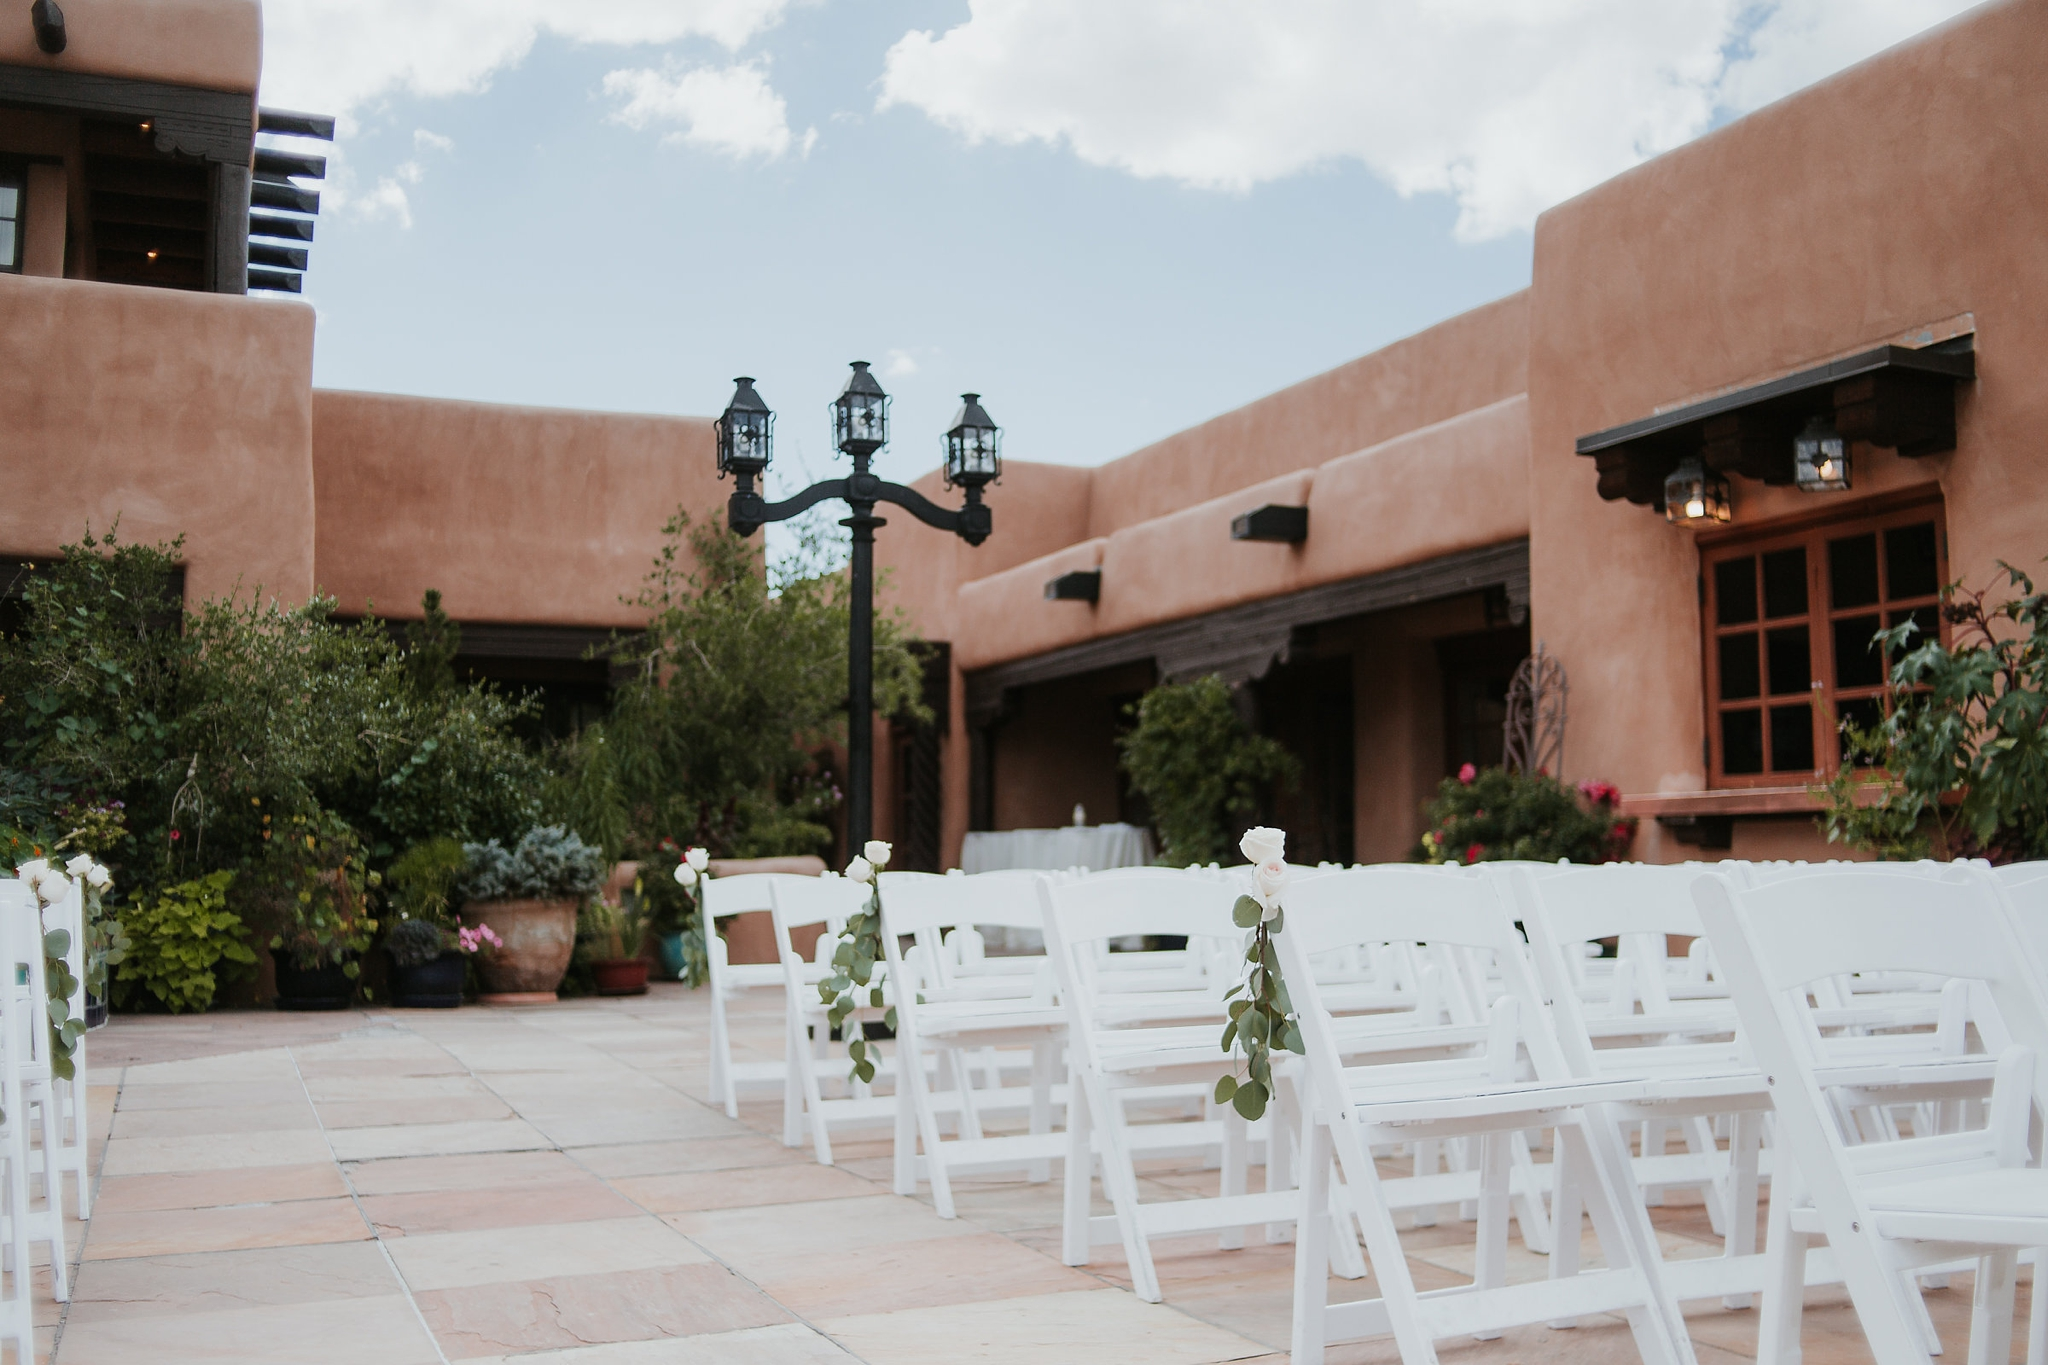 Alicia+lucia+photography+-+albuquerque+wedding+photographer+-+santa+fe+wedding+photography+-+new+mexico+wedding+photographer+-+new+mexico+wedding+-+engagement+-+santa+fe+wedding+-+la+fonda+on+the+plaza+-+la+fonda+wedding_0019.jpg